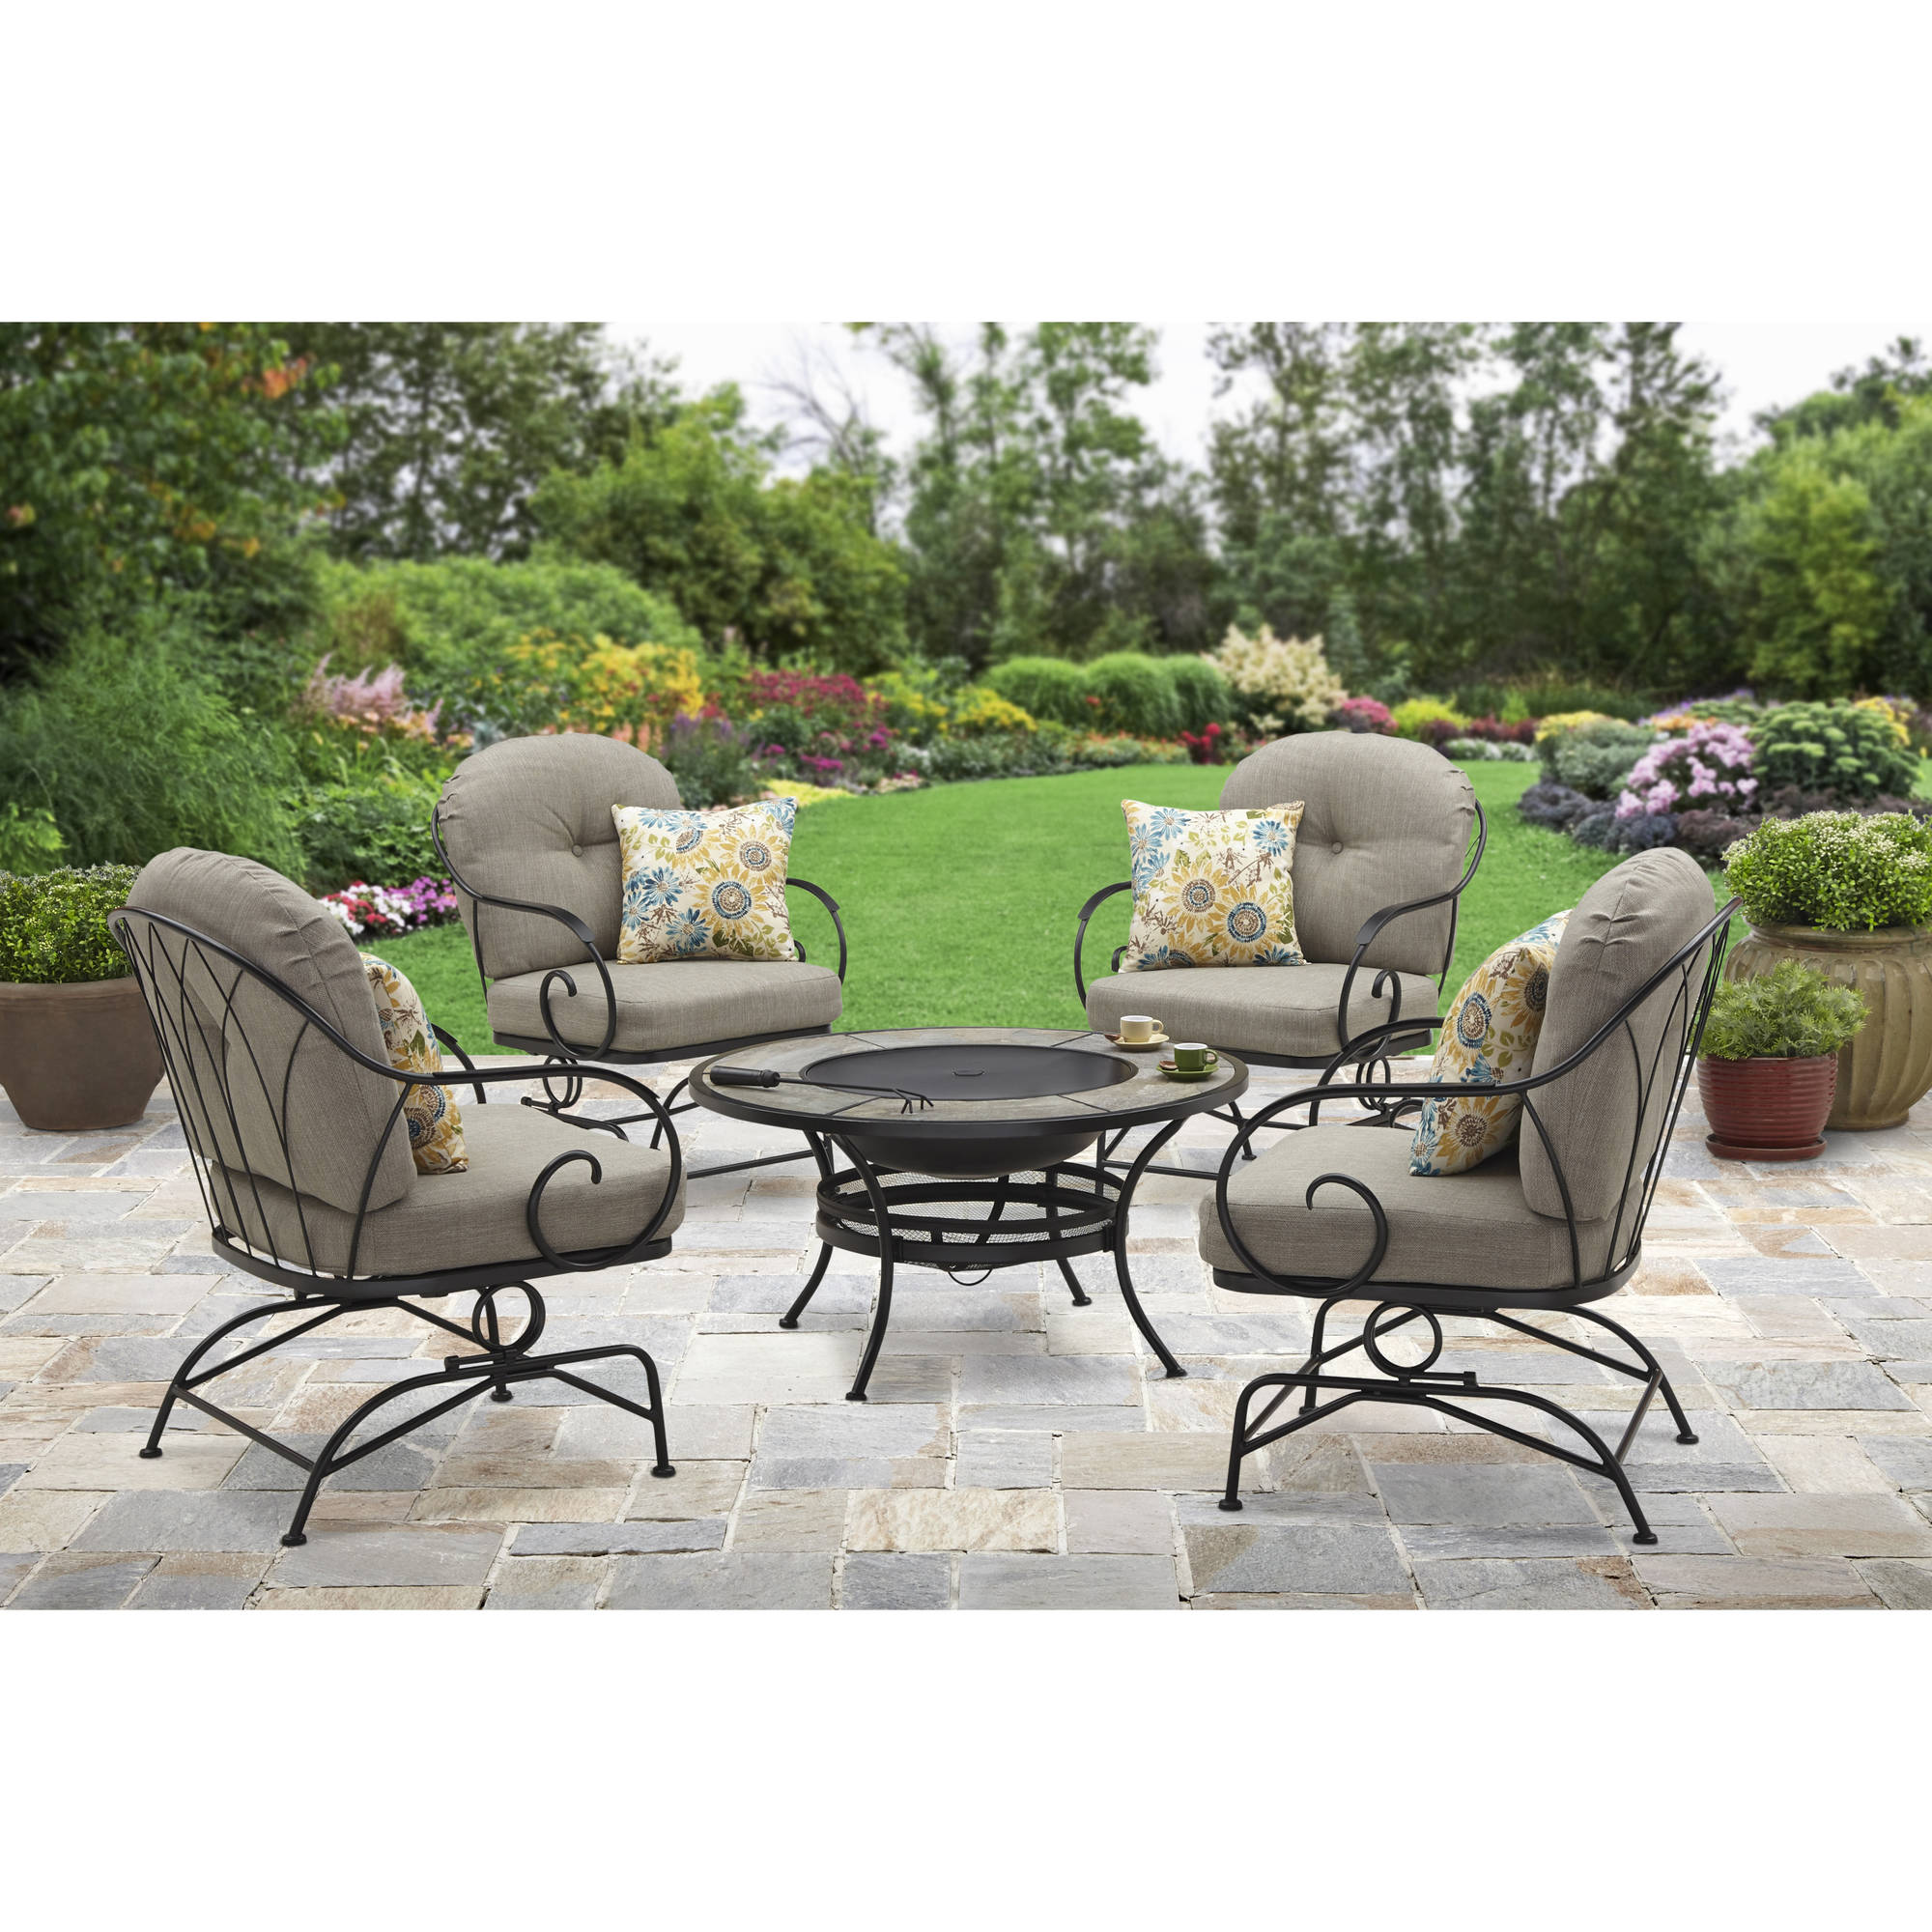 Better Homes And Gardens Myrtle Creek Outdoor Lounge Chairs, Set Of 4    Walmart.com